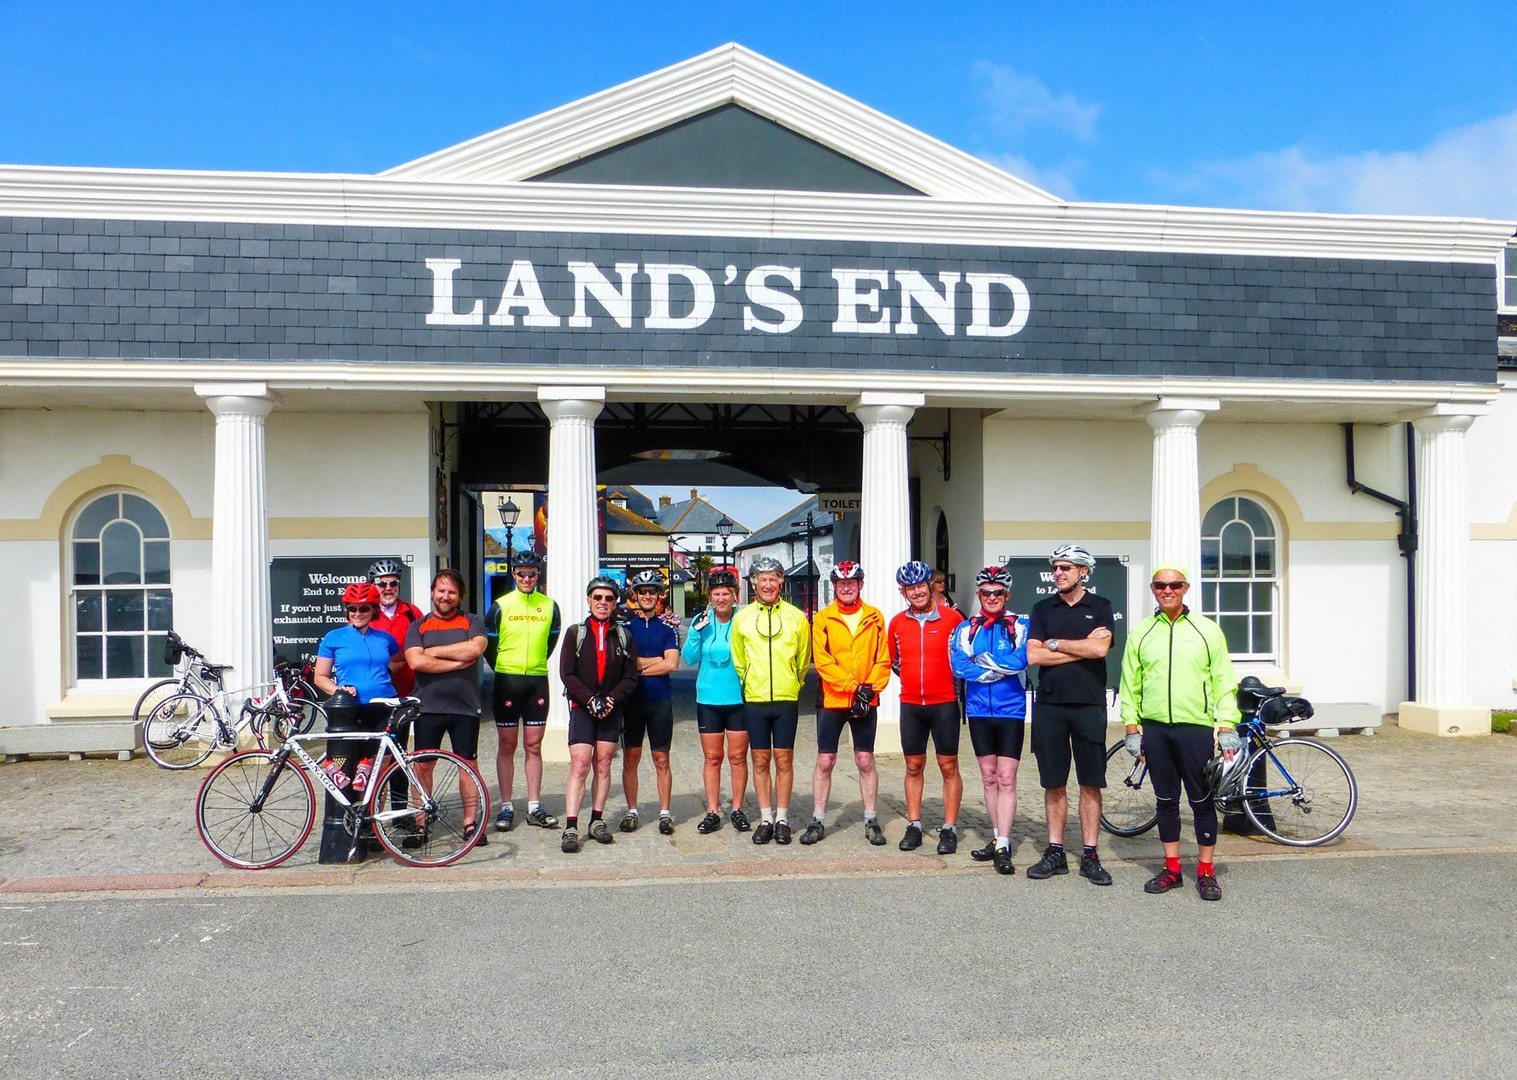 22-day-guided-cycling-holiday-in-the-uk-lejog-route-saddle-skedaddle.jpg - UK - Land's End to John O'Groats Explorer (22 days) - Guided Cycling Holiday - Road Cycling